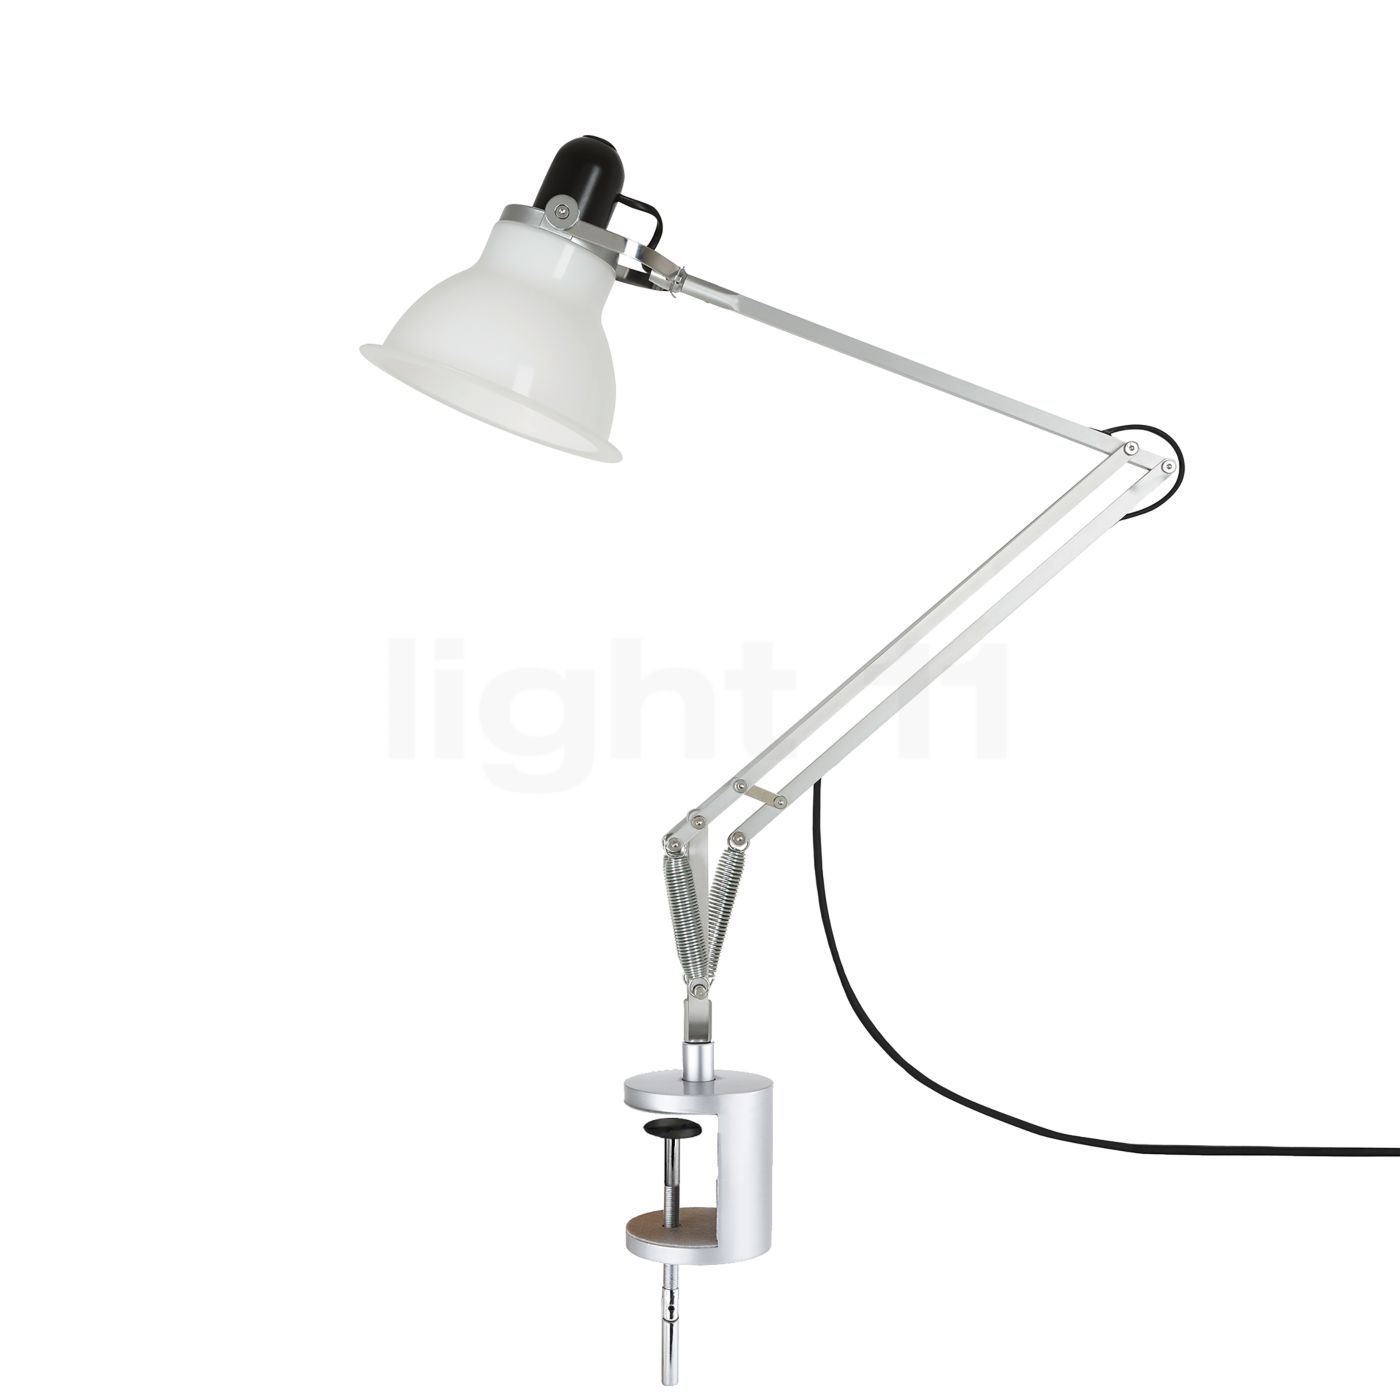 anglepoise type 1228 lampe de bureau avec pince de serrage lampe de table. Black Bedroom Furniture Sets. Home Design Ideas